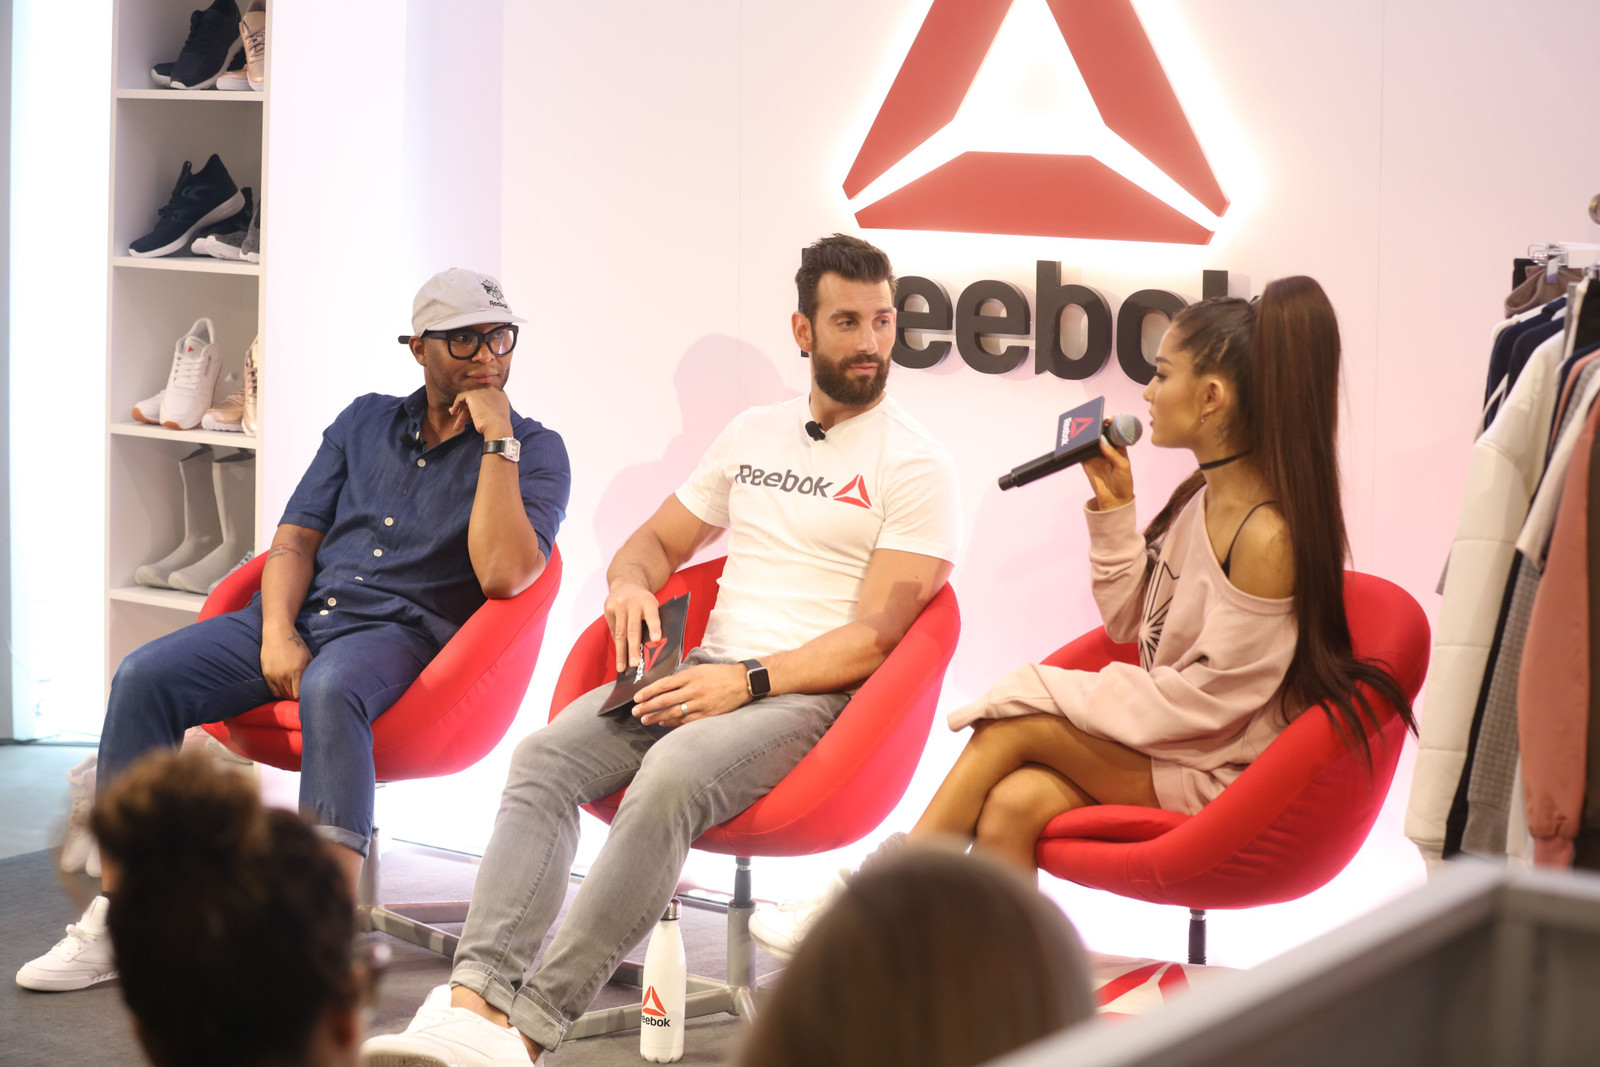 Ariana Grande Reebok Exclusive Hong Kong Event Concert Interview Panel Discussion Dangerous Woman Tour